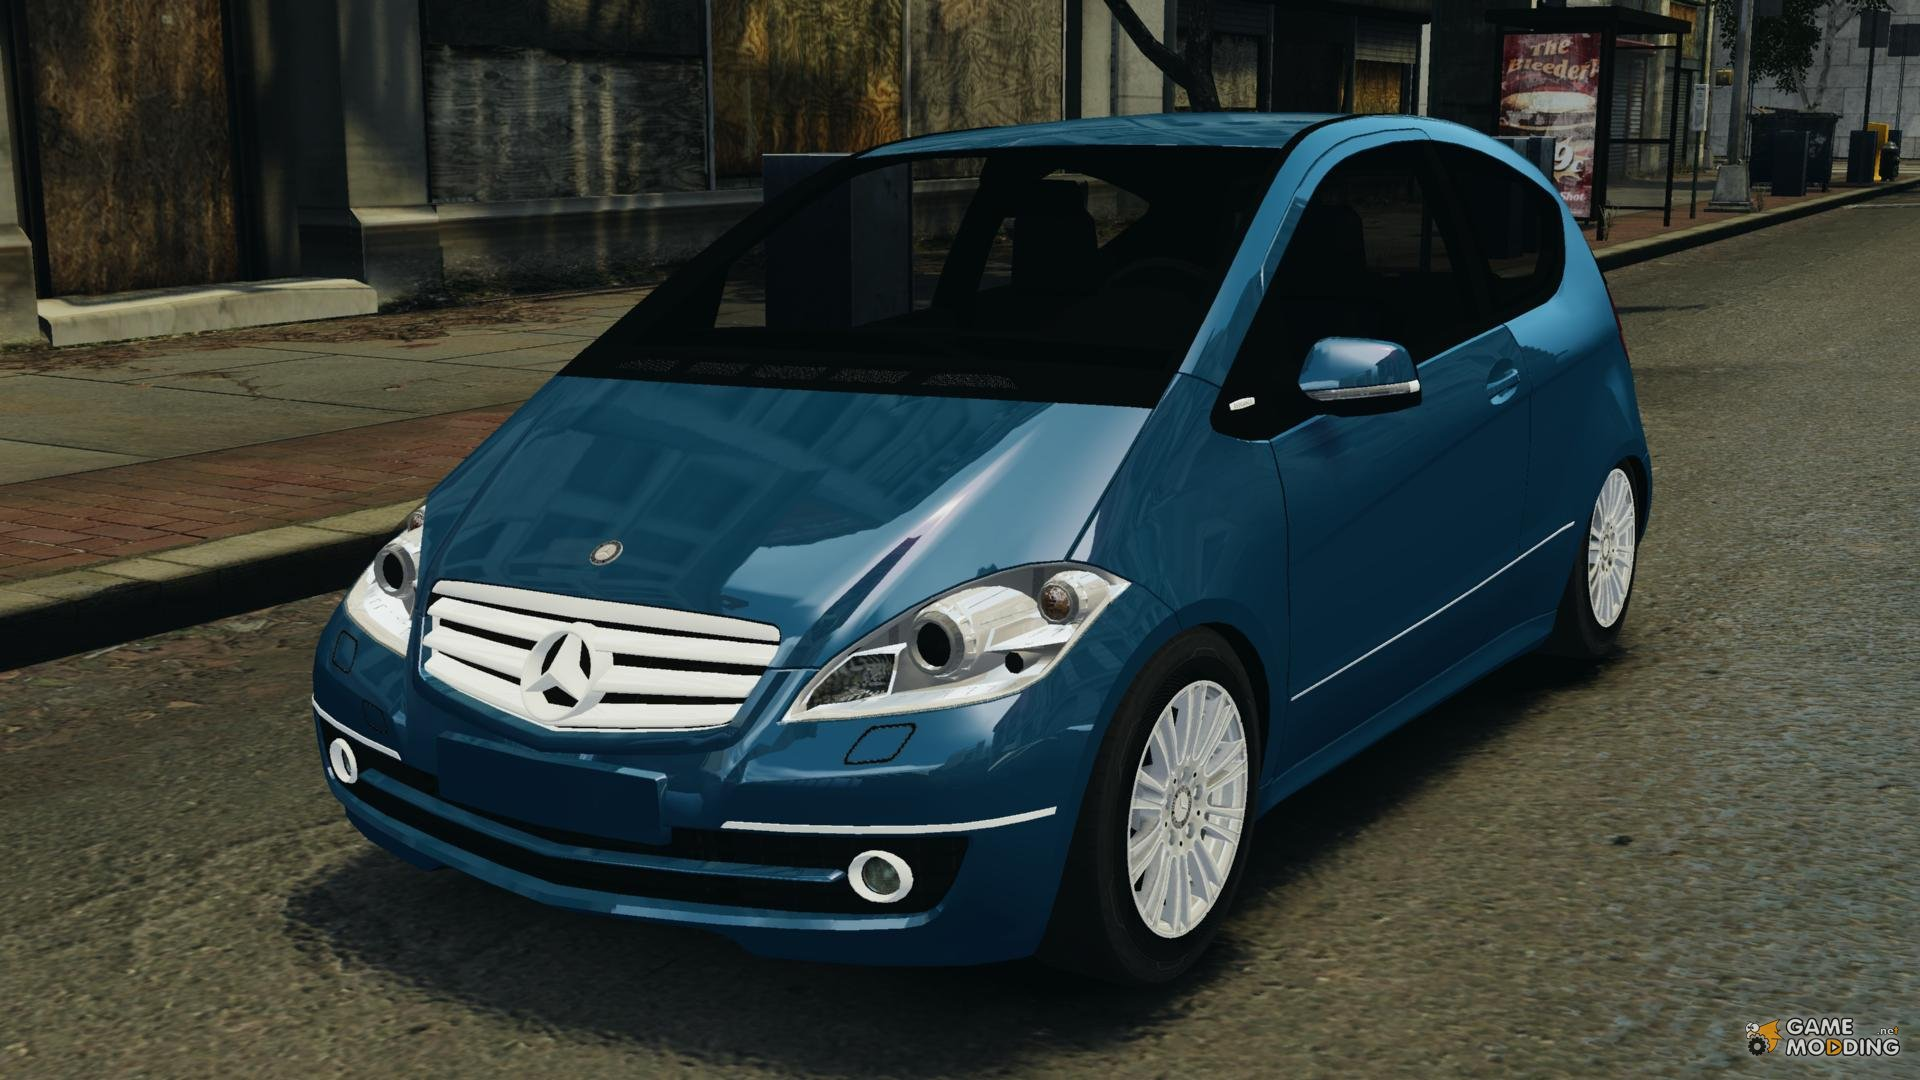 Mercedes Benz A200 Turbo 2009 For Gta 4